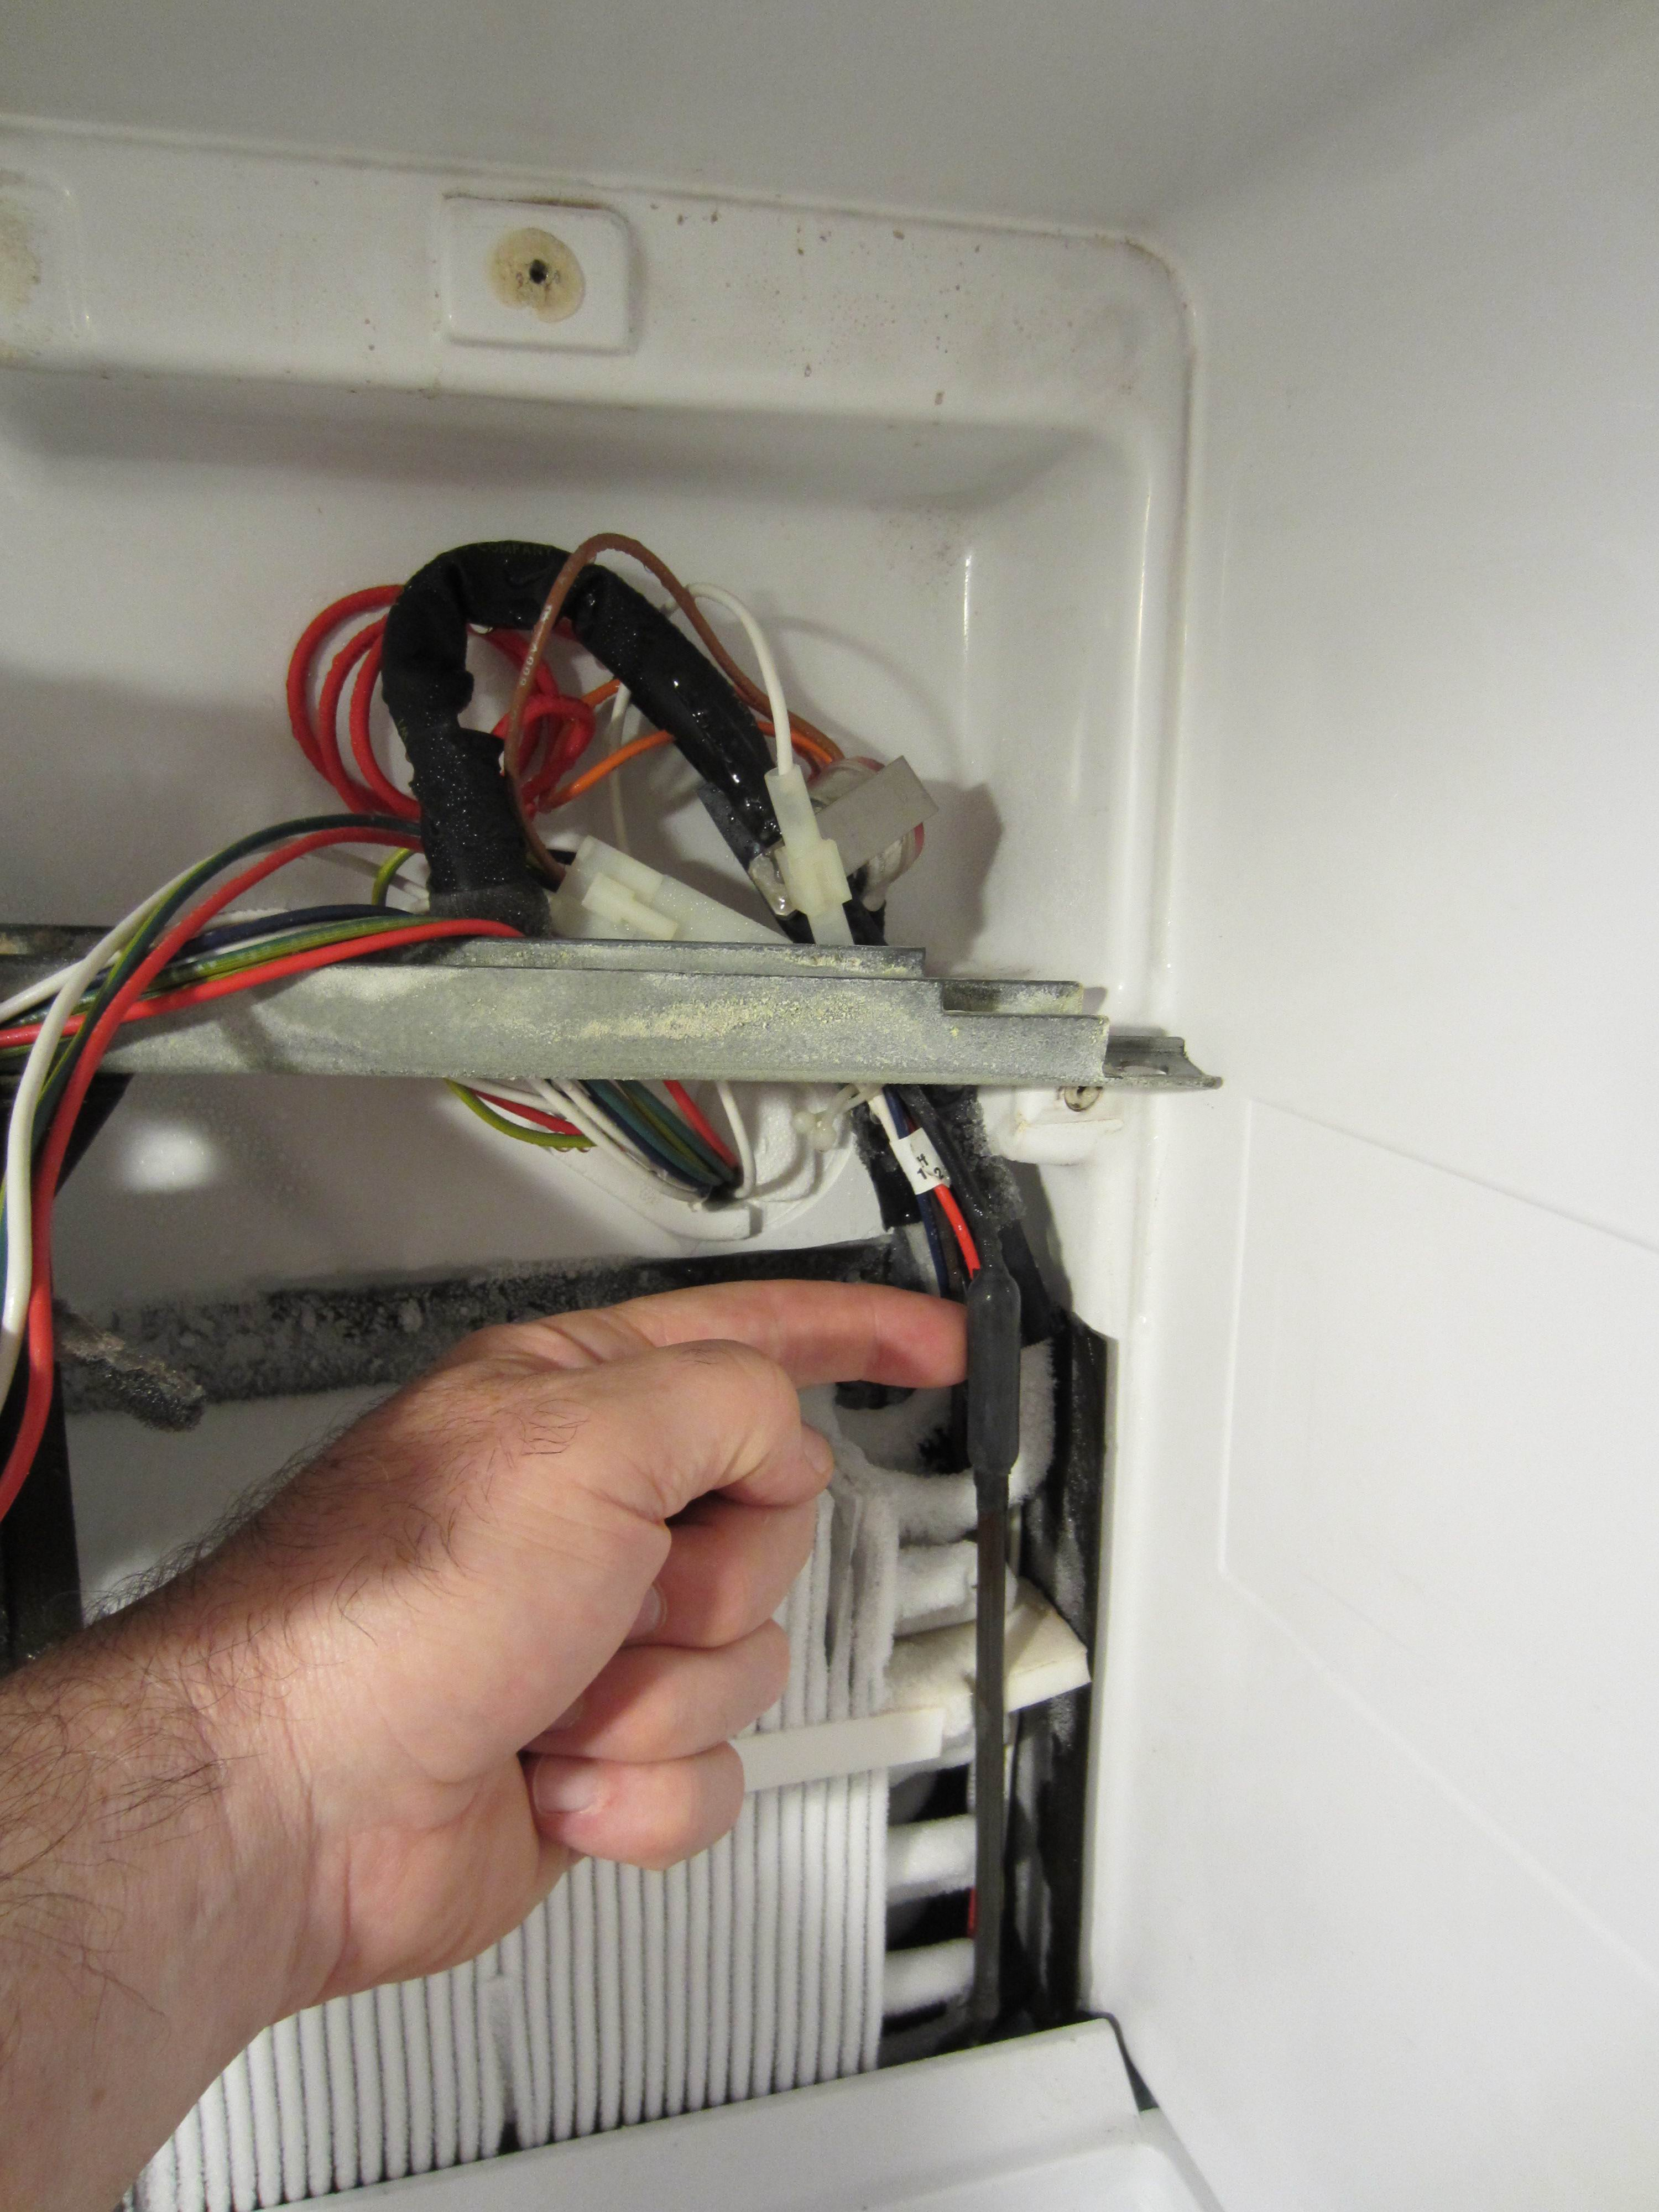 Fridge Compartment Not Cold Enough Garage Door Sensor Wiring Diagram Http Wwwjustanswercom Appliance I Hope That Image Worked For You Can See The Item Wanted Me To Find